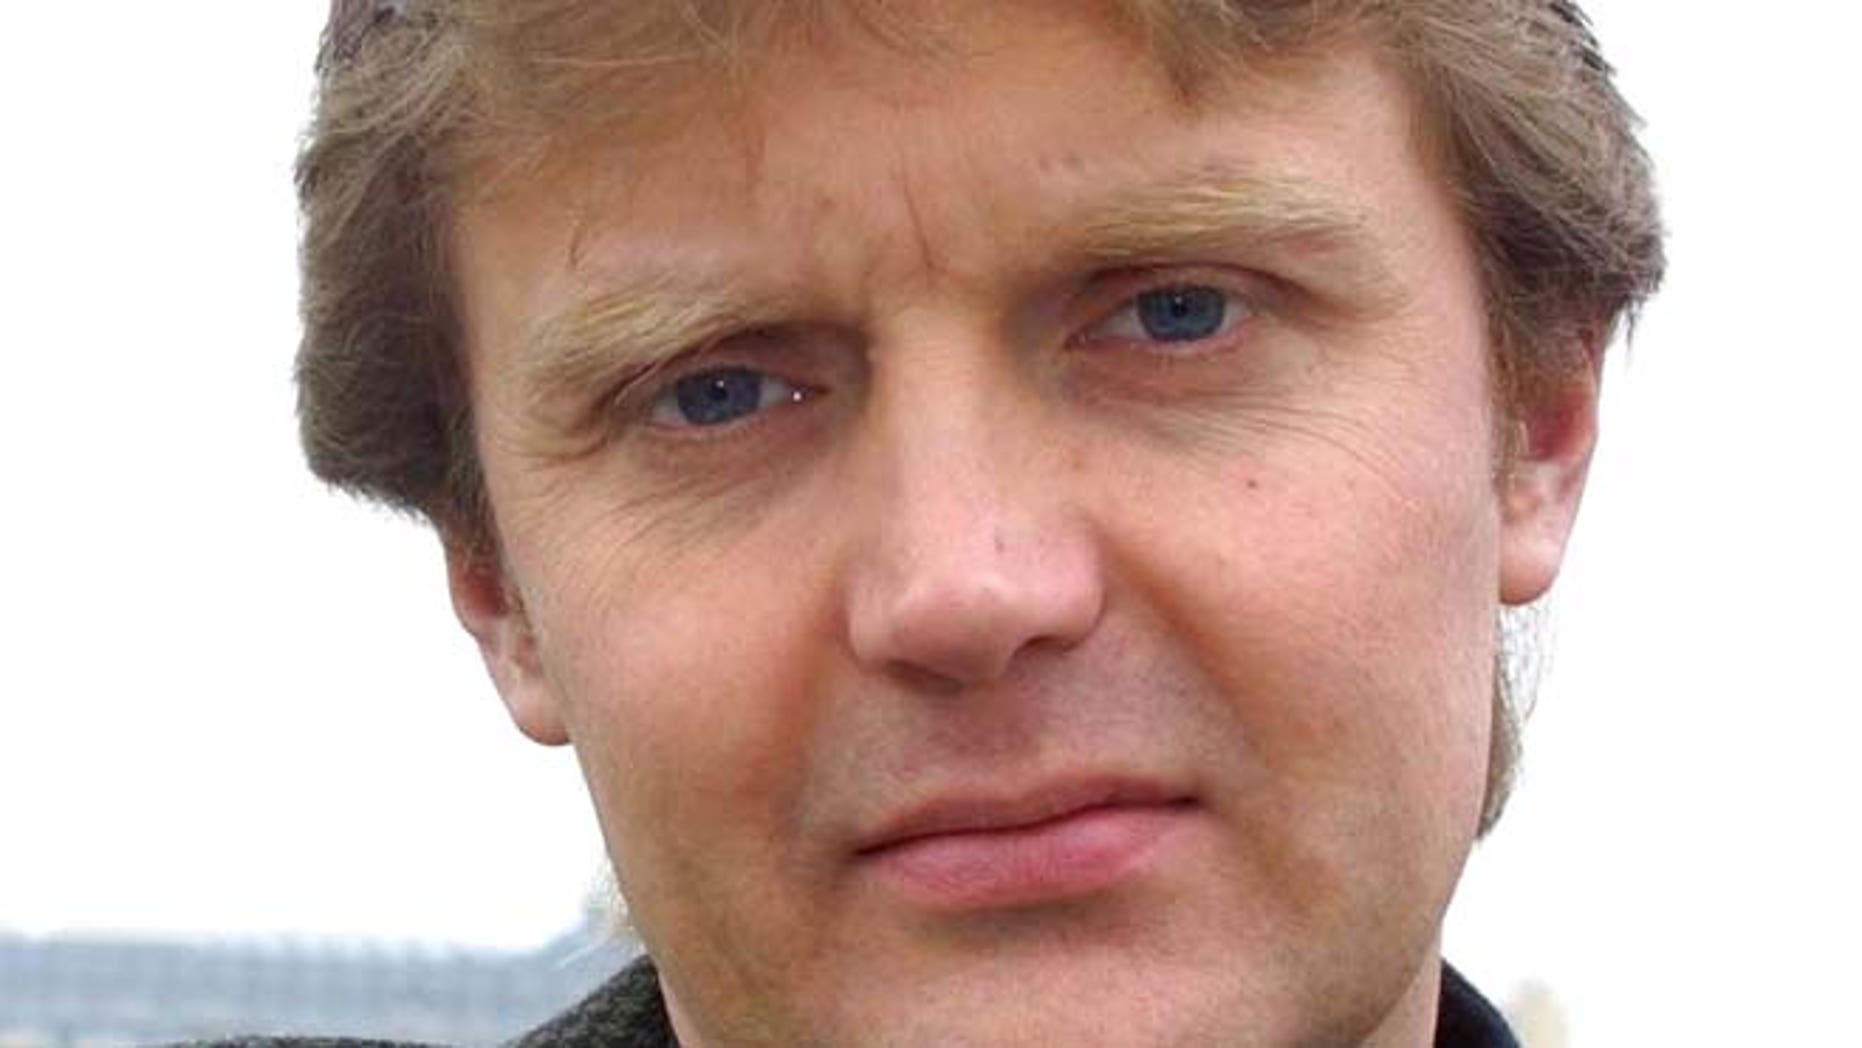 """May 10, 2002: Alexander Litvinenko, former KGB spy and author of the book """"Blowing Up Russia: Terror From Within"""" is photographed at his home in London."""